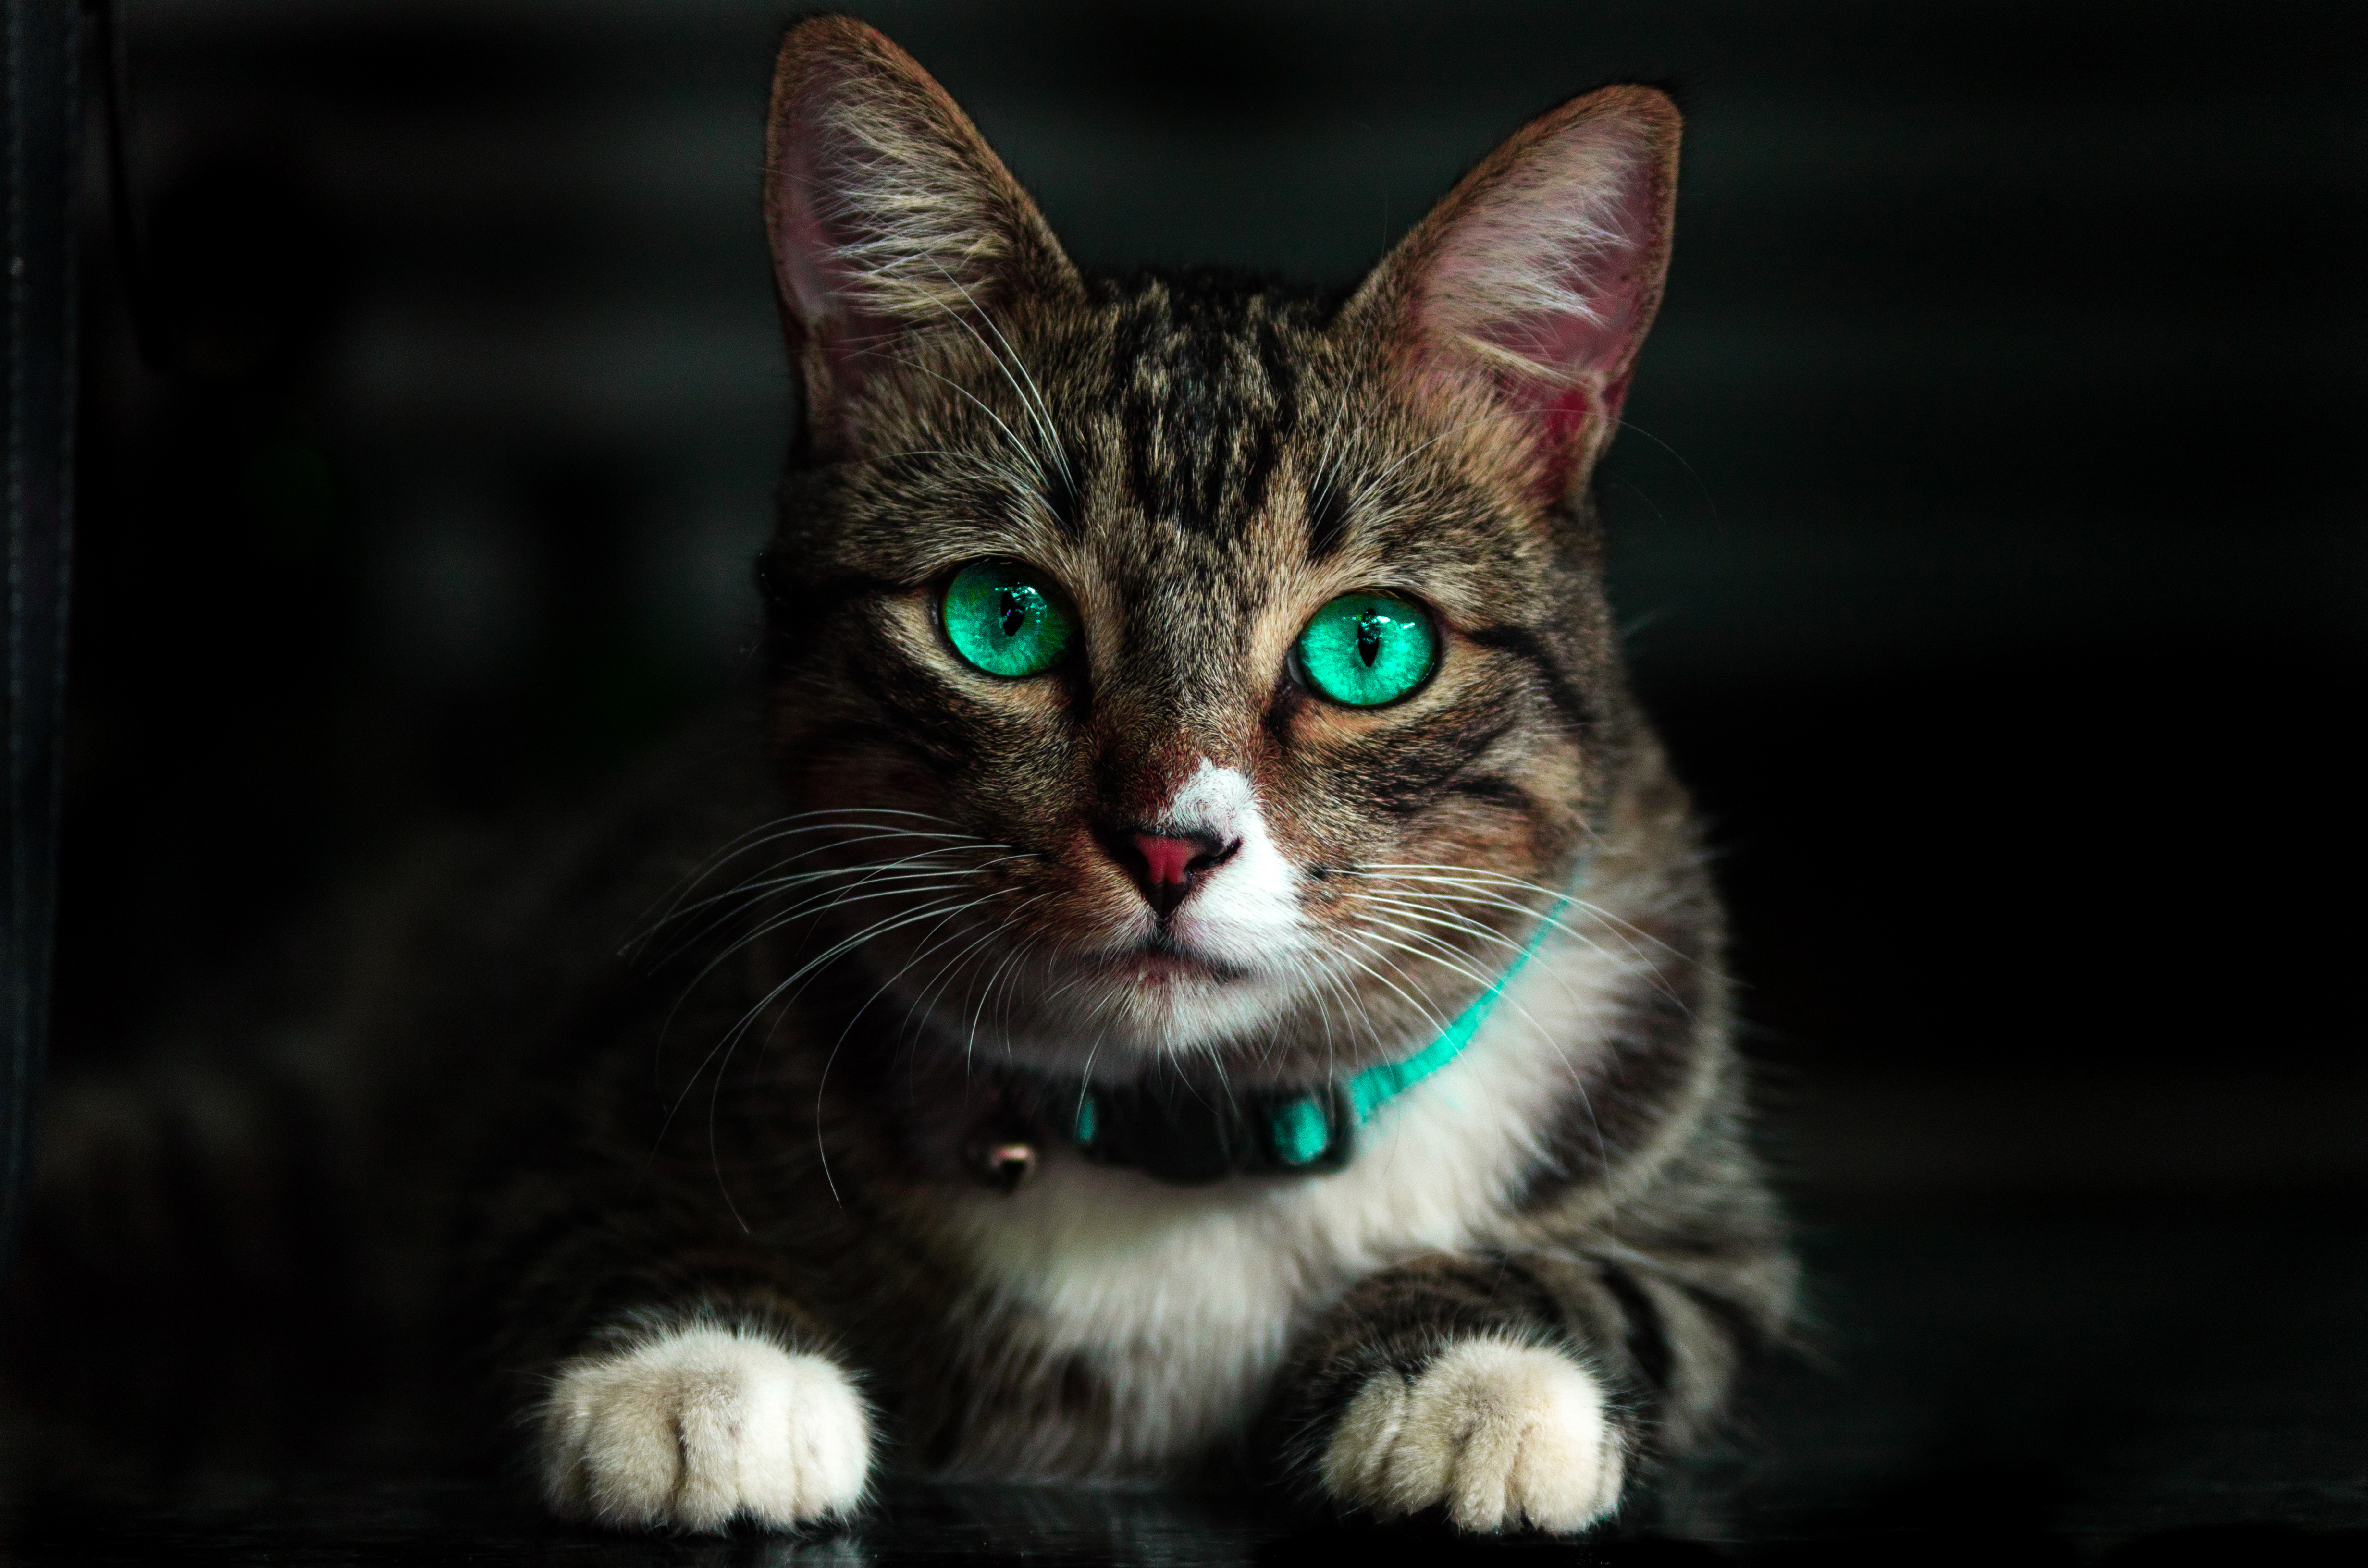 cat green eyes 4k hd animals 4k wallpapers images